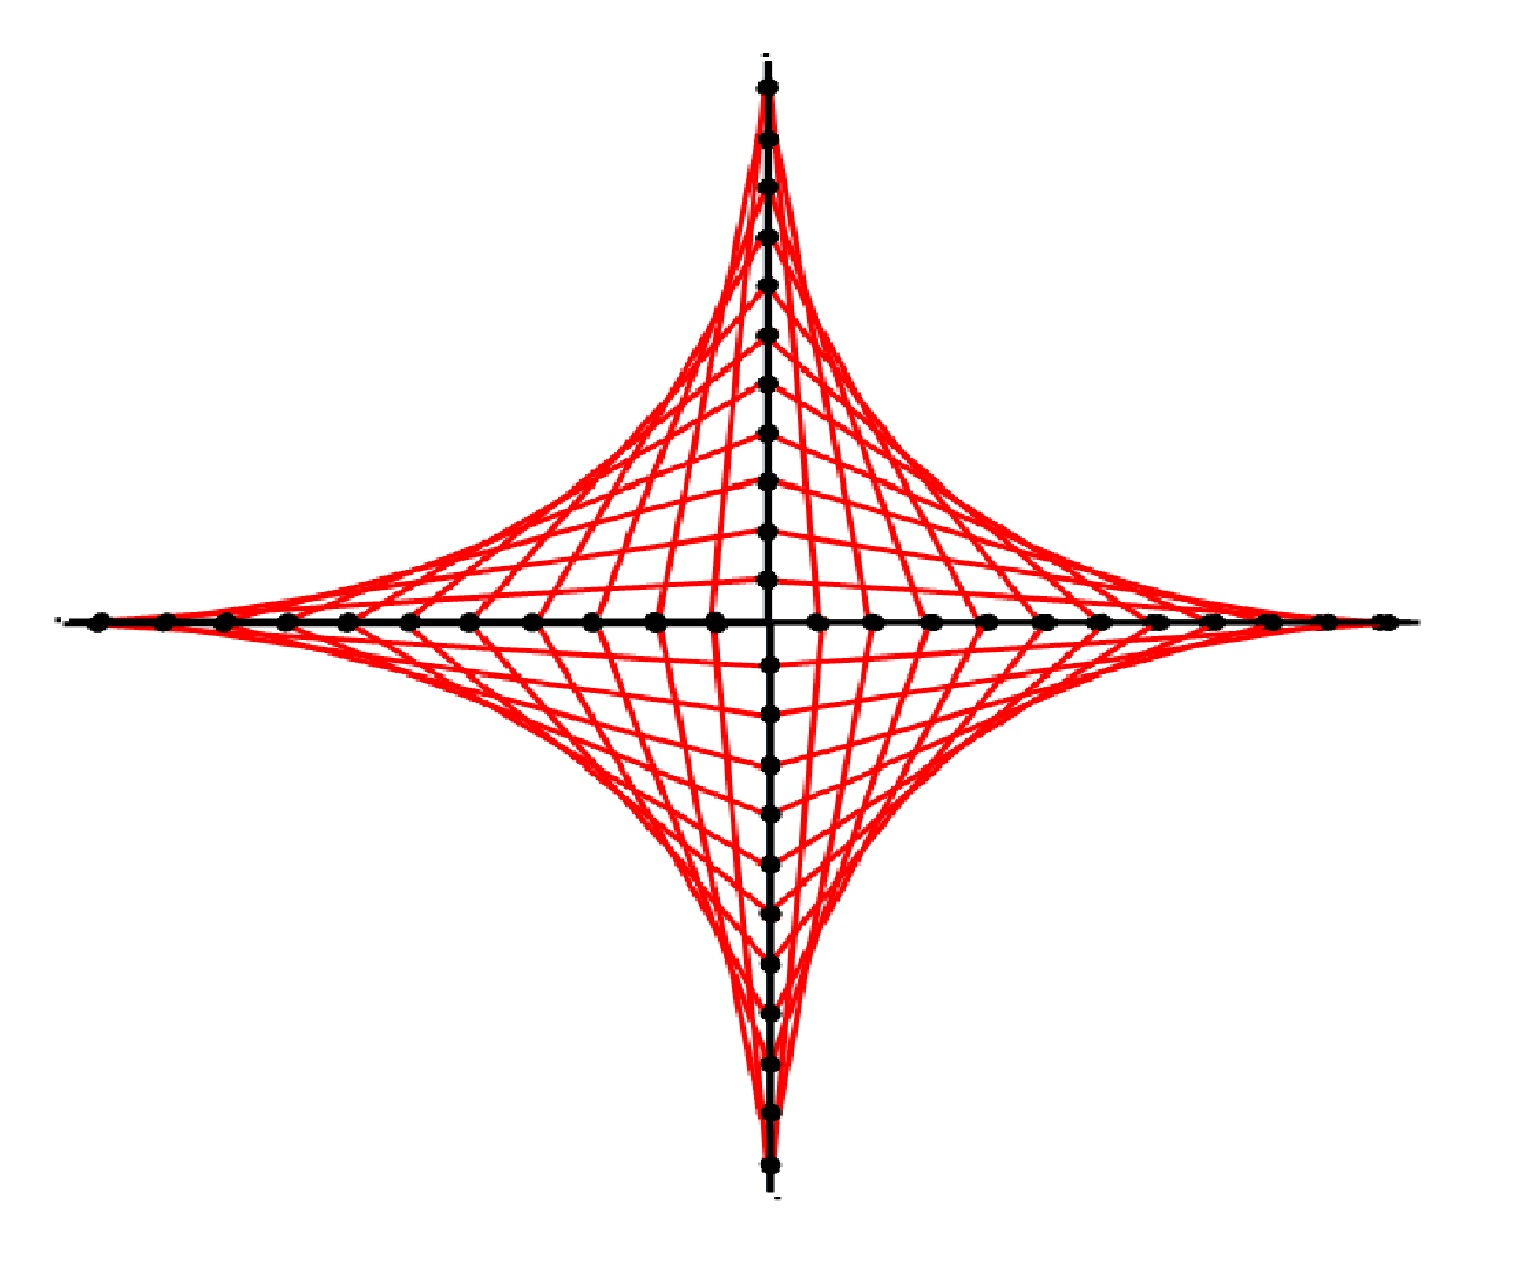 Curves Formed From Straight Lines Mathematics Realm